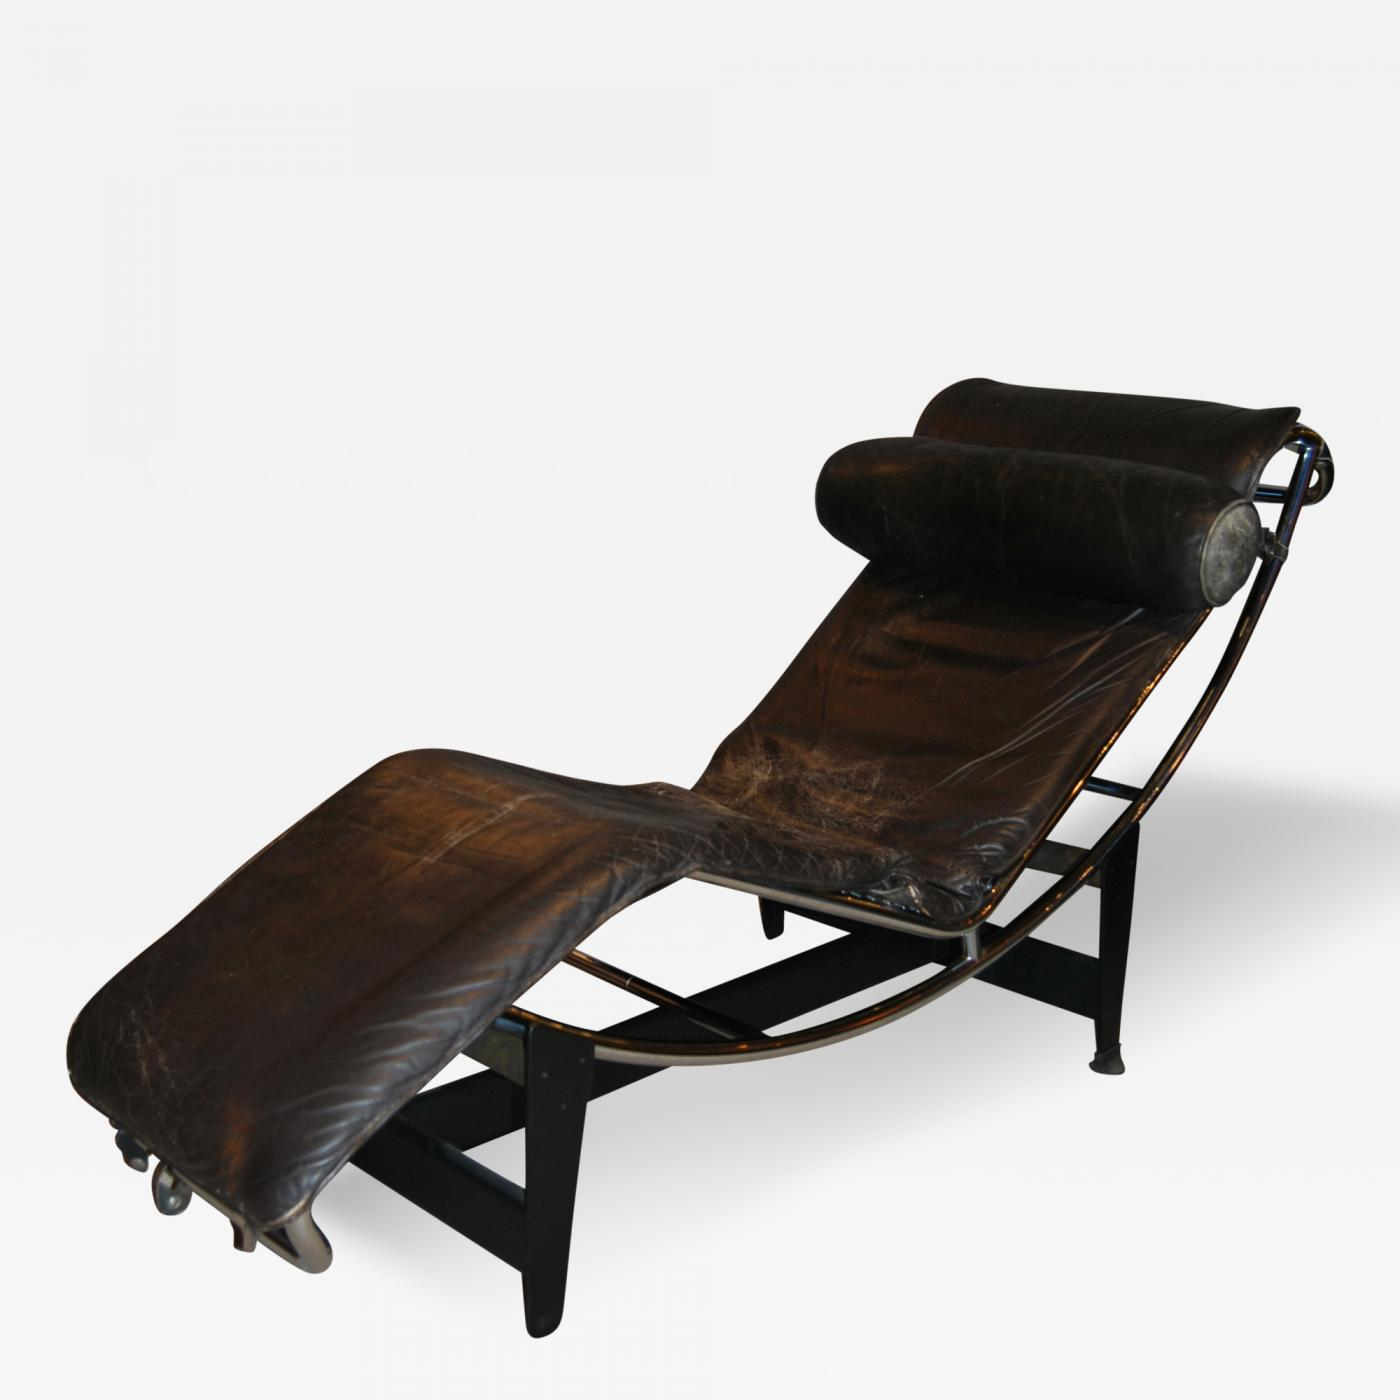 Pierre jeanneret early le corbusier jeanneret for Chaise corbusier